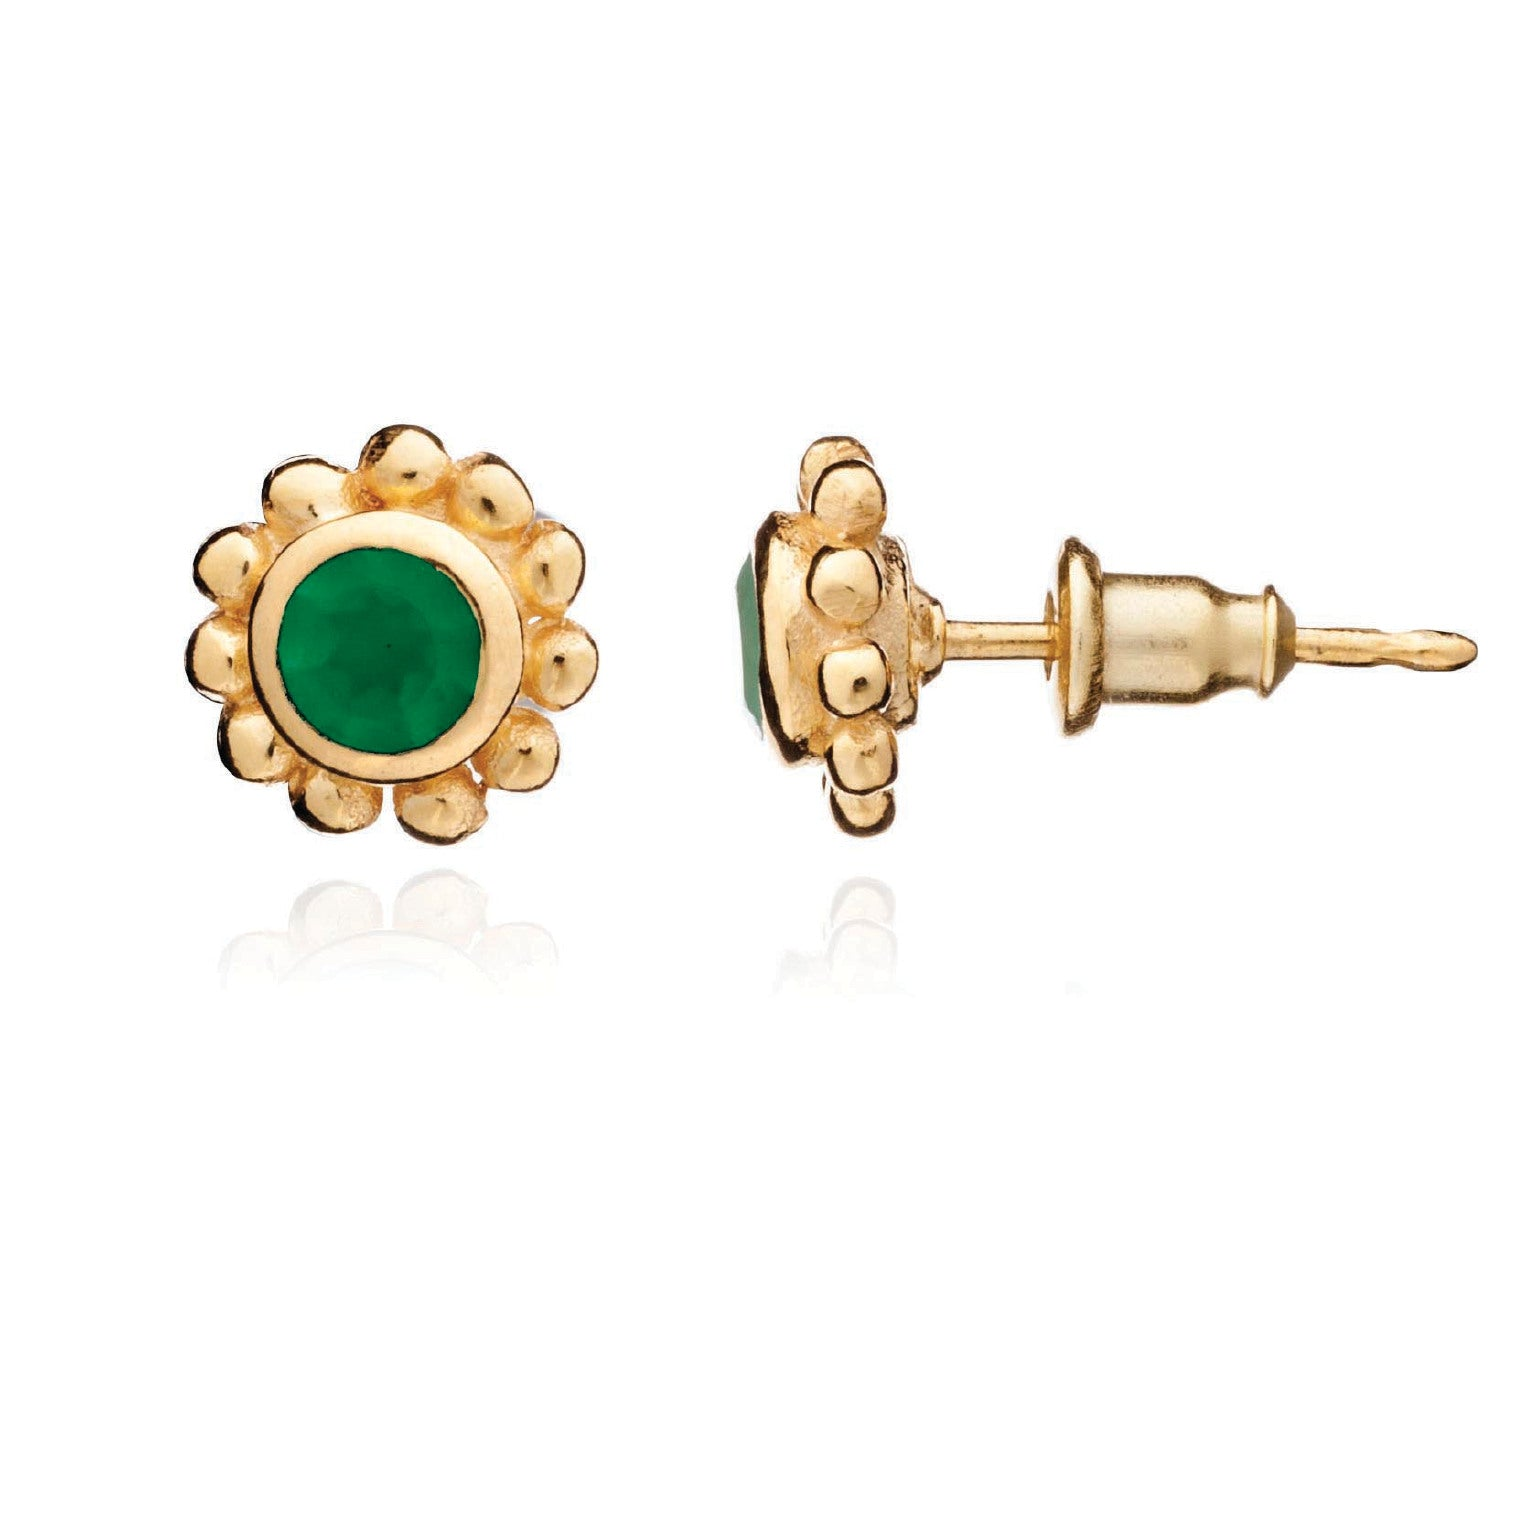 azuni-green-onyx-eclips-stud-earrings